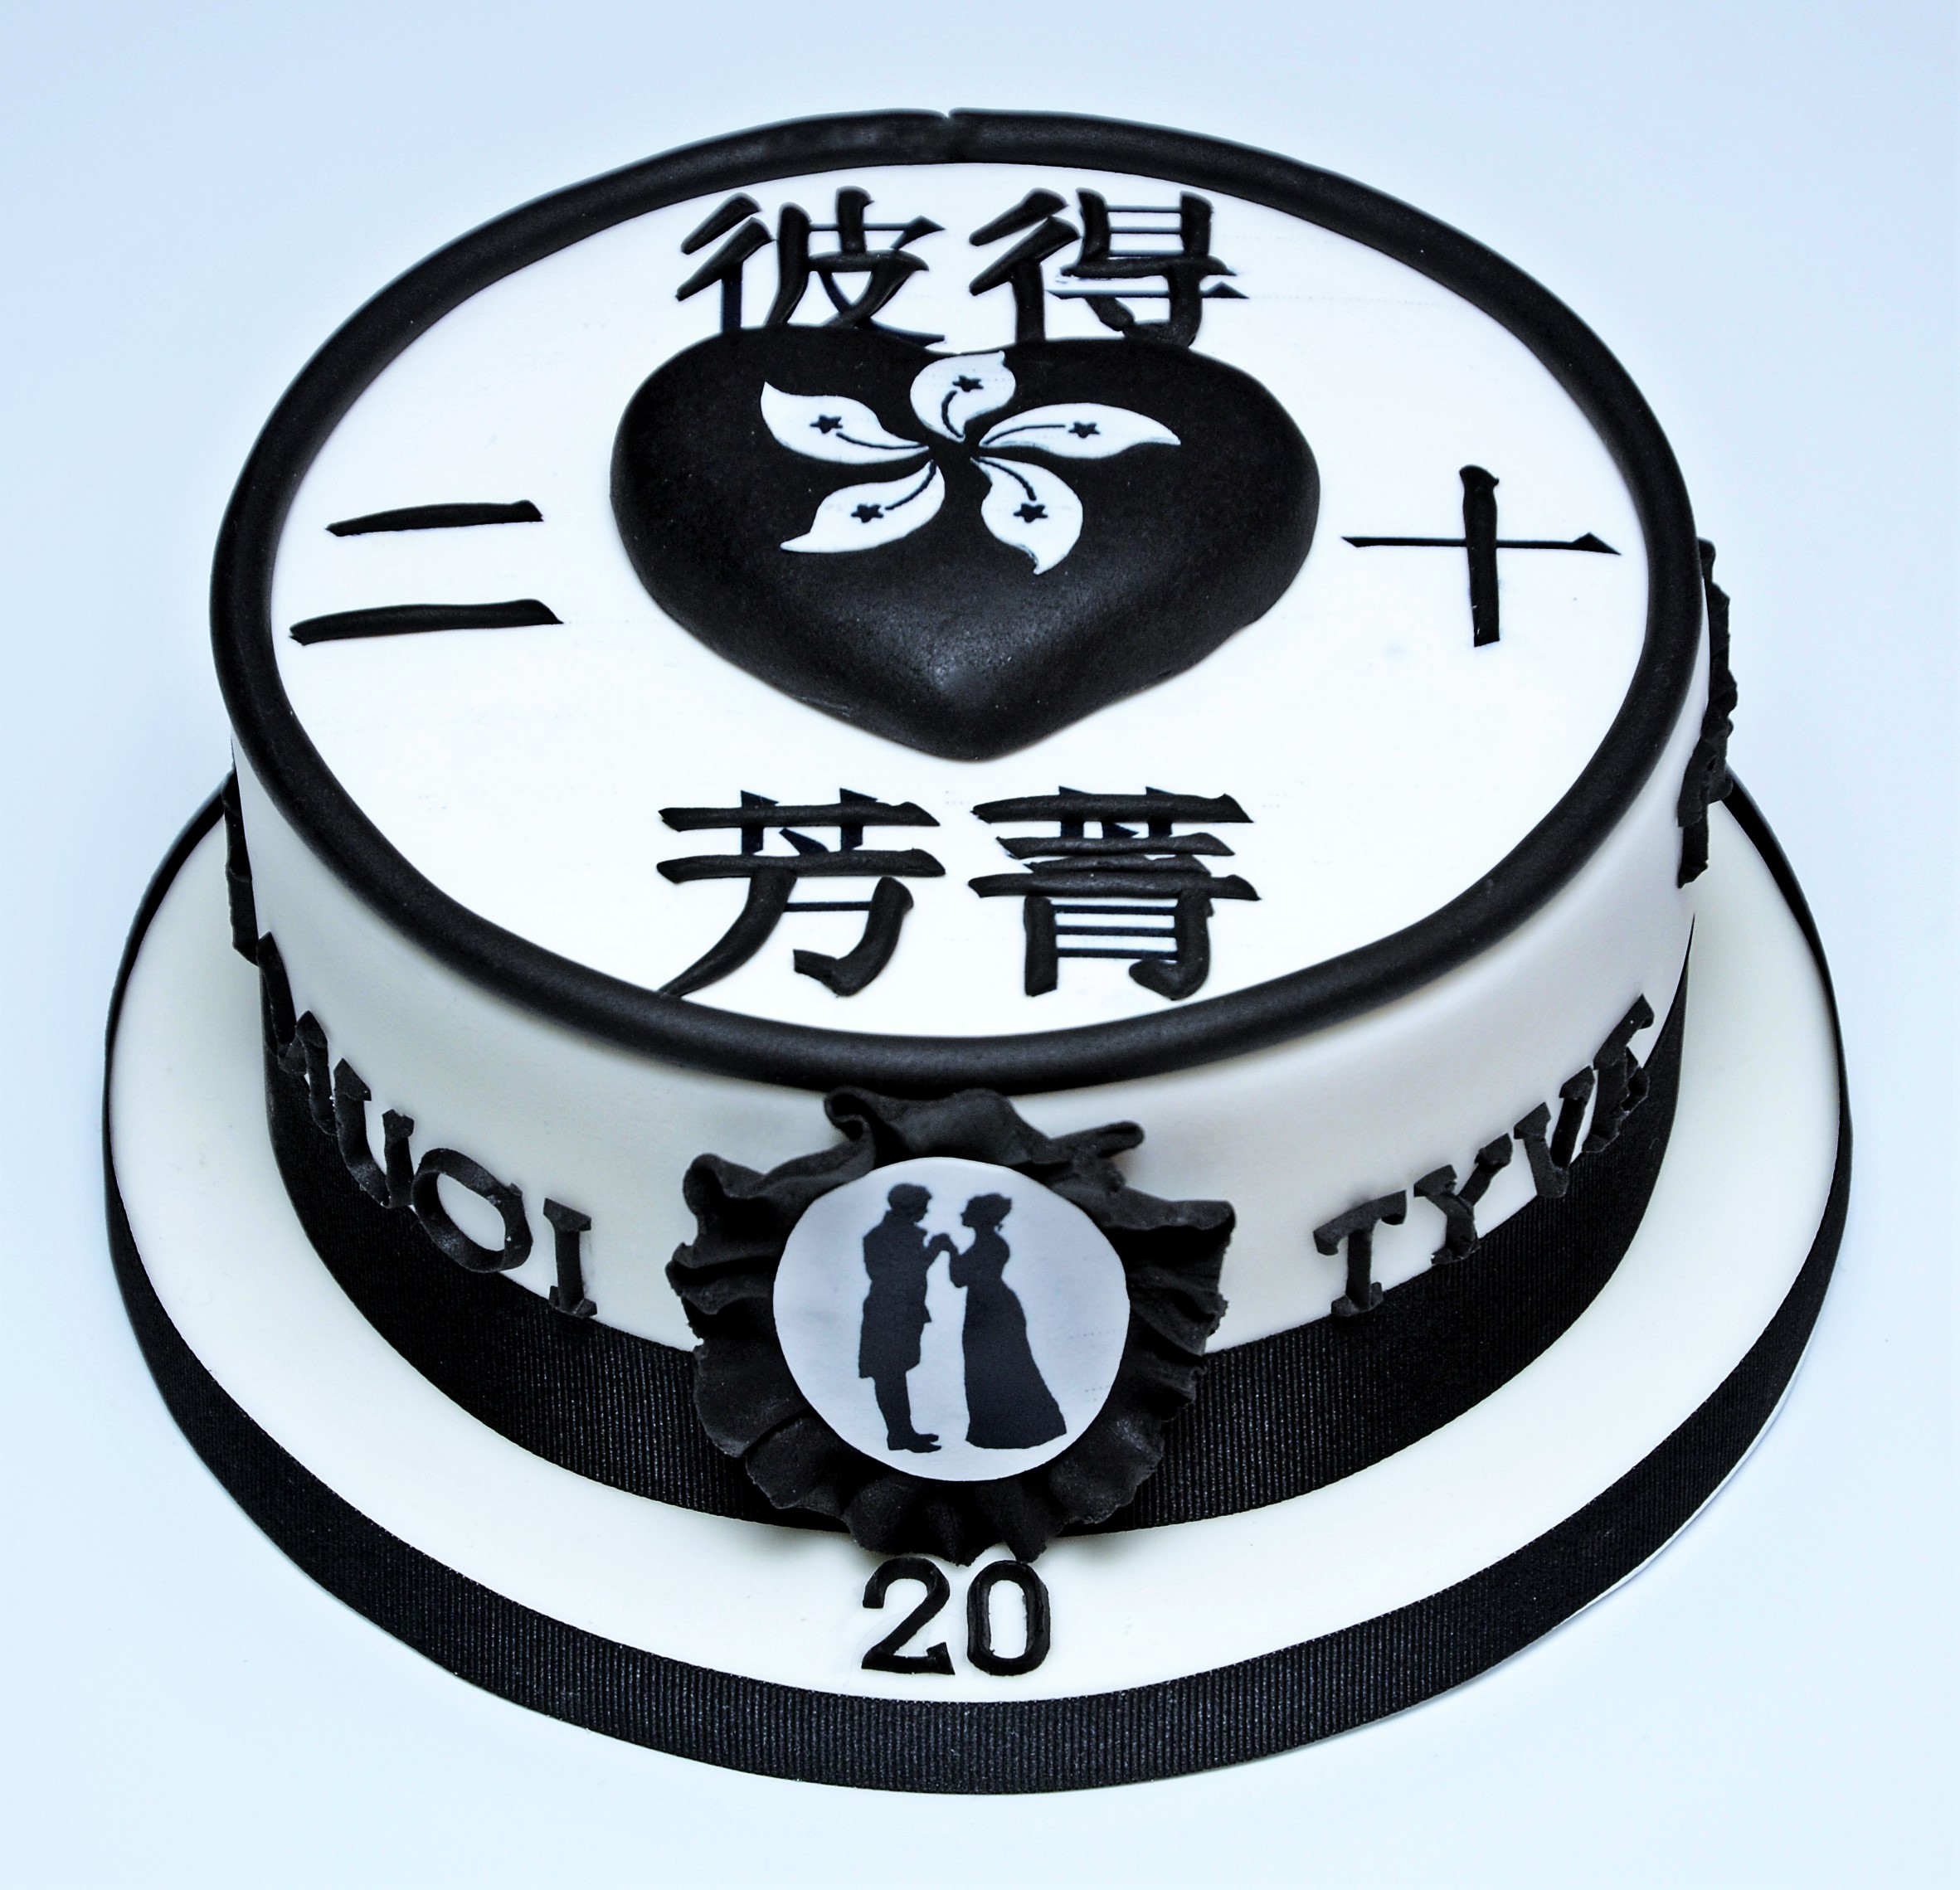 Chinese 20th Anniversary Cake